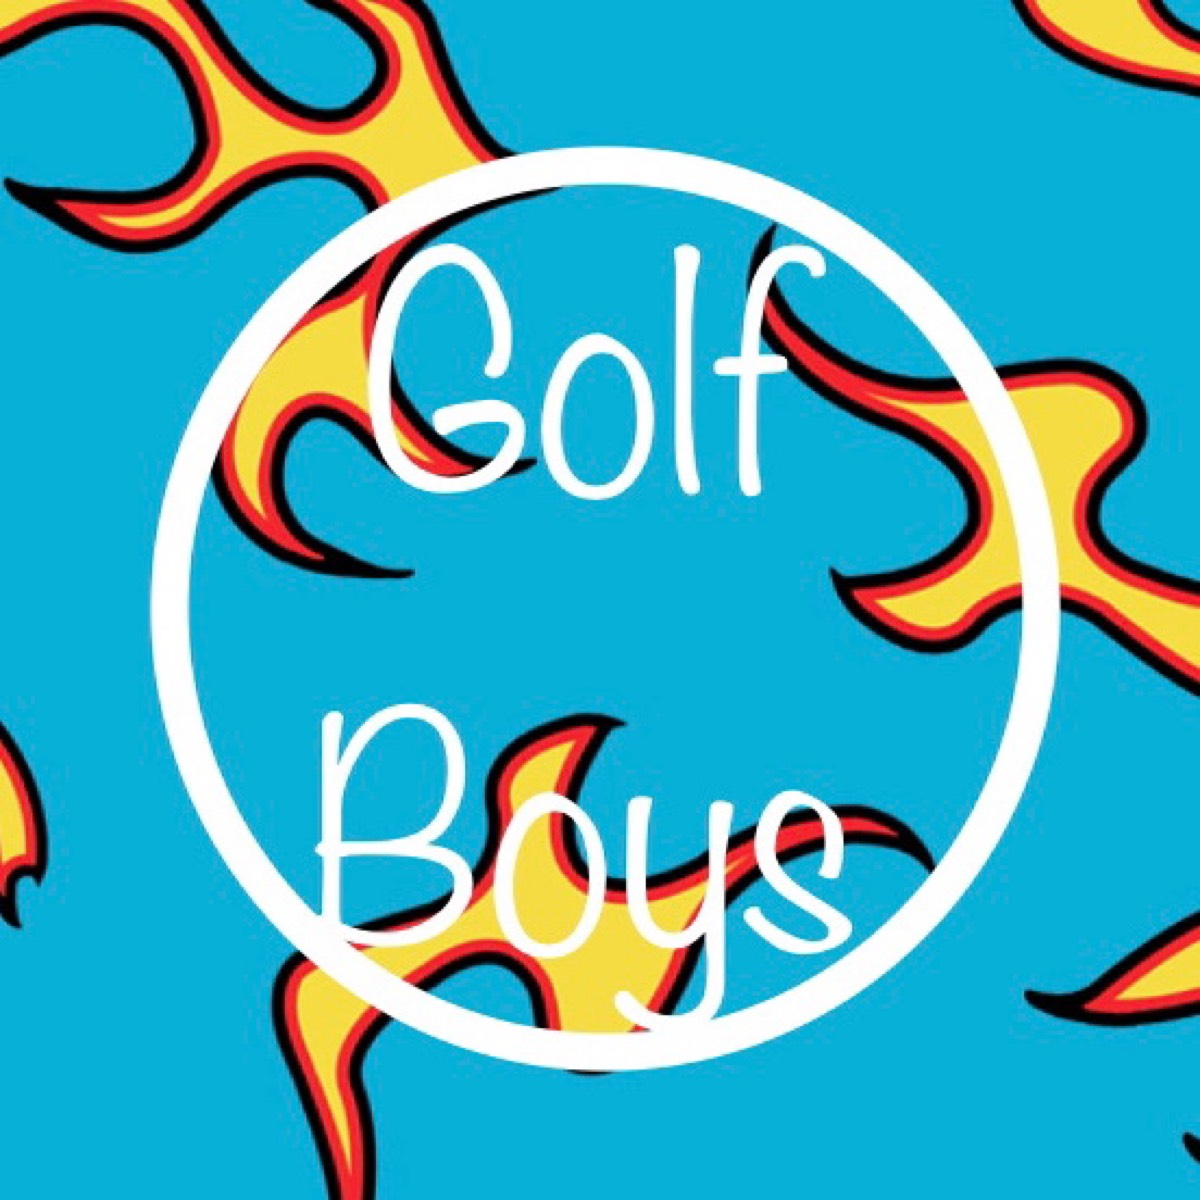 Bump profile picture for @thegolfboys